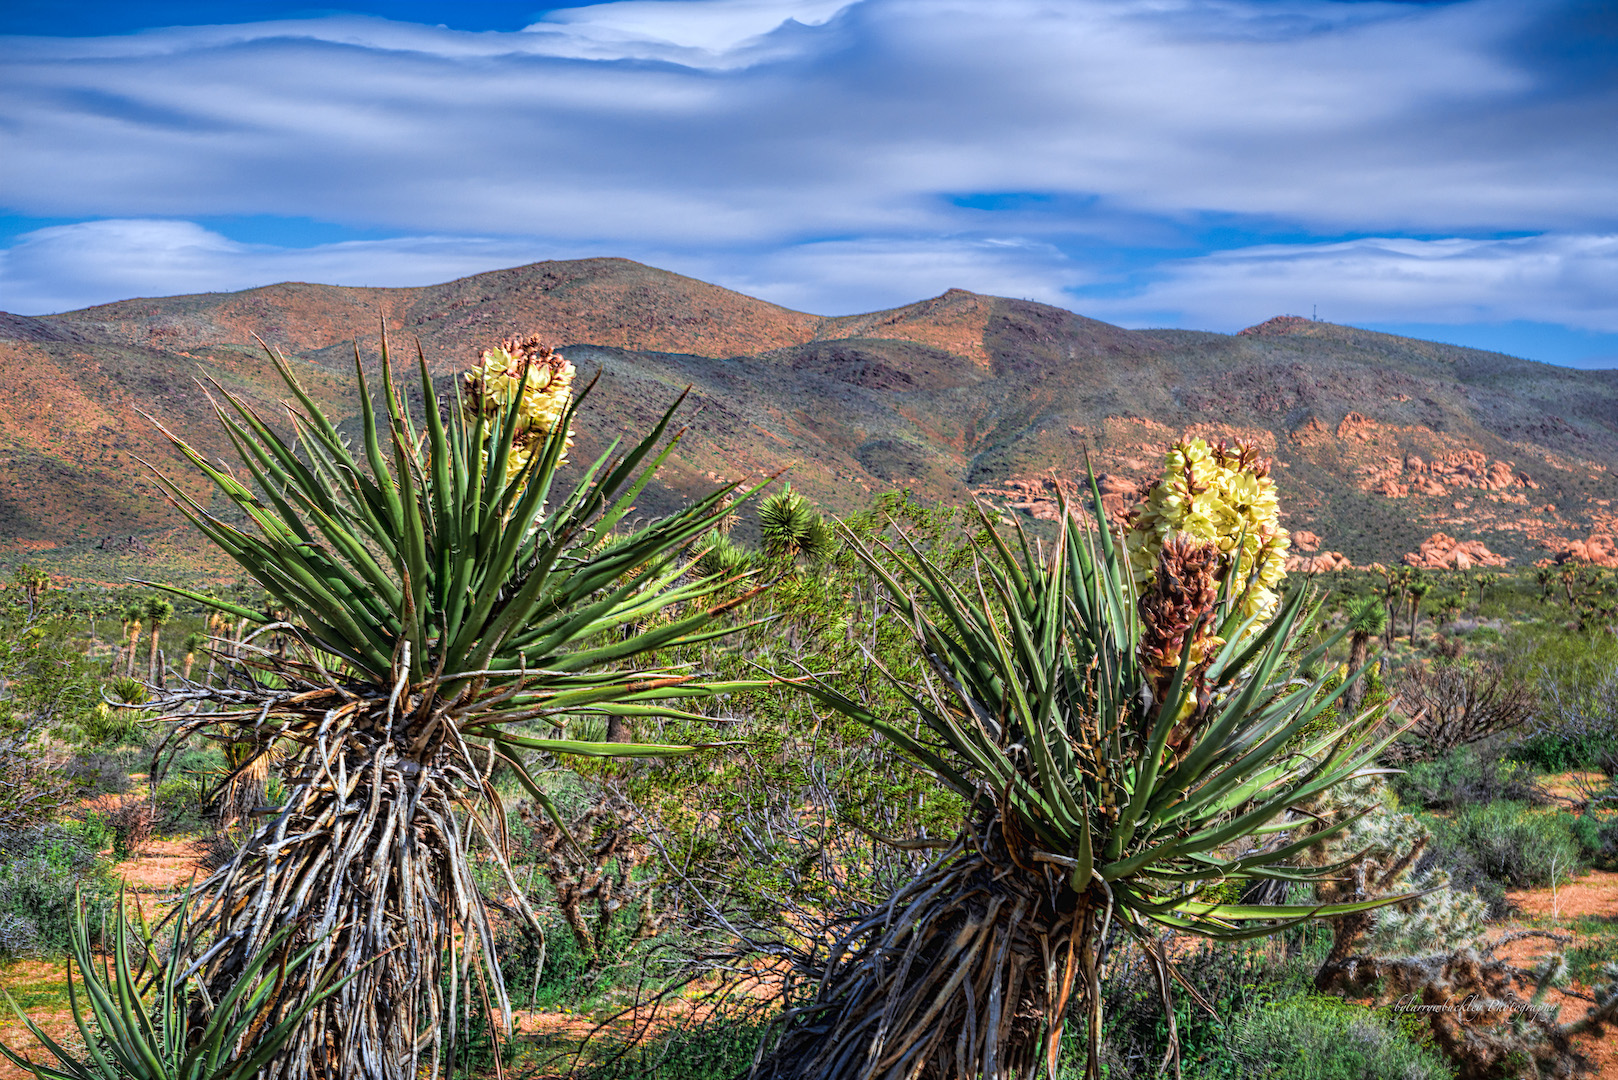 Mohave Yucca